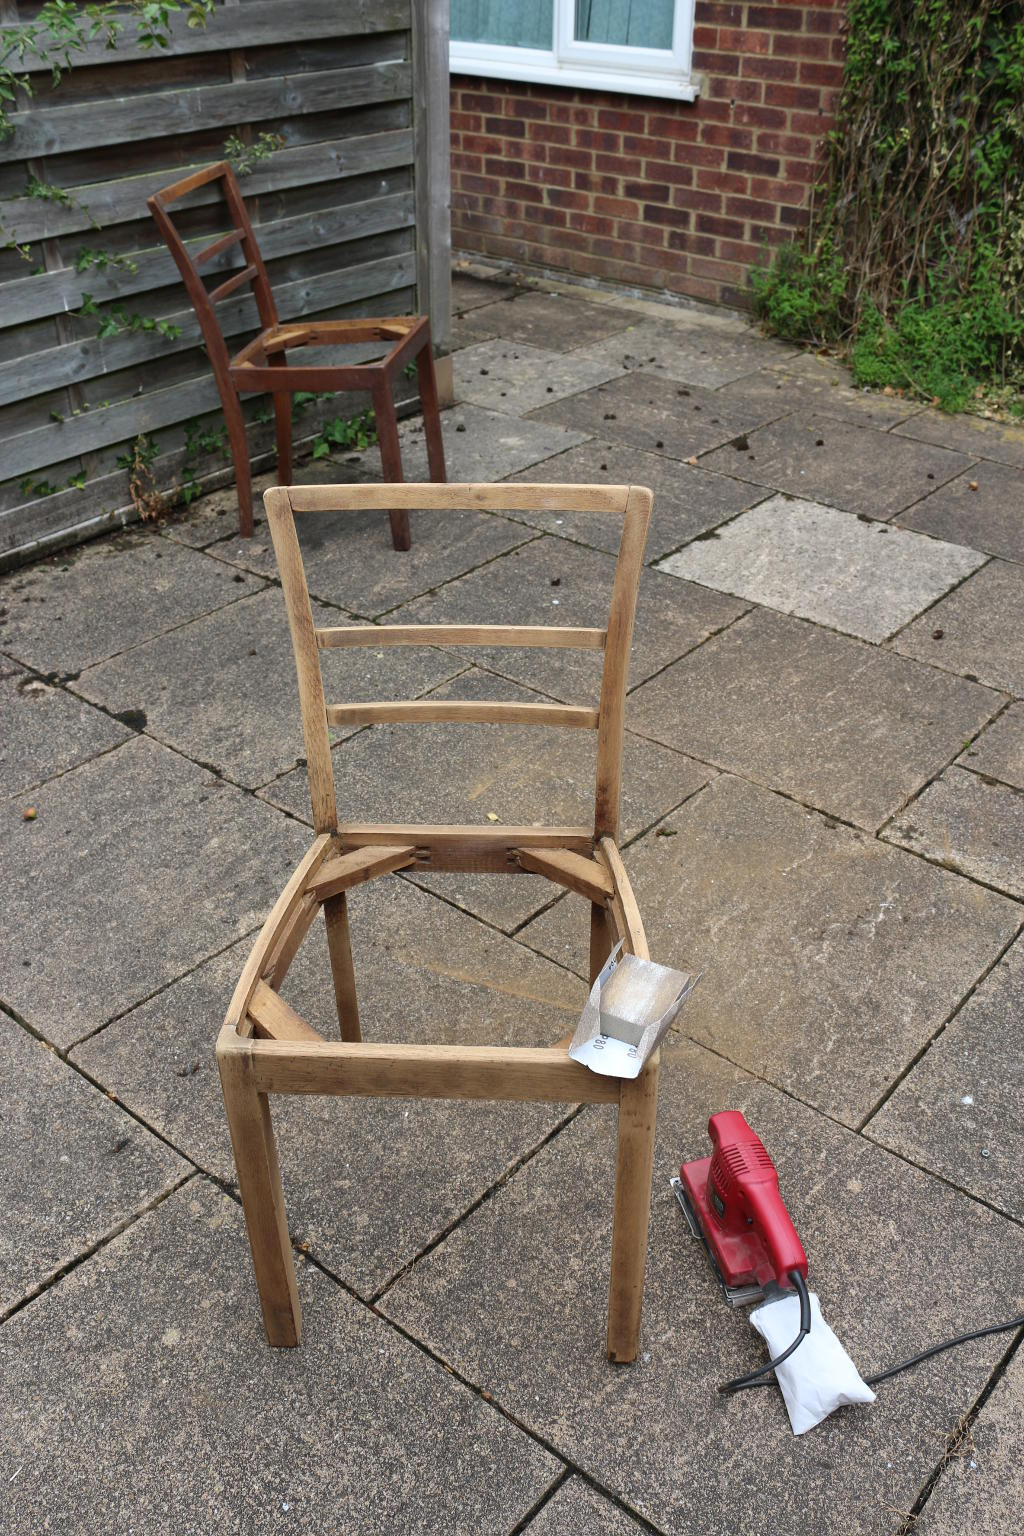 Sanding the chair